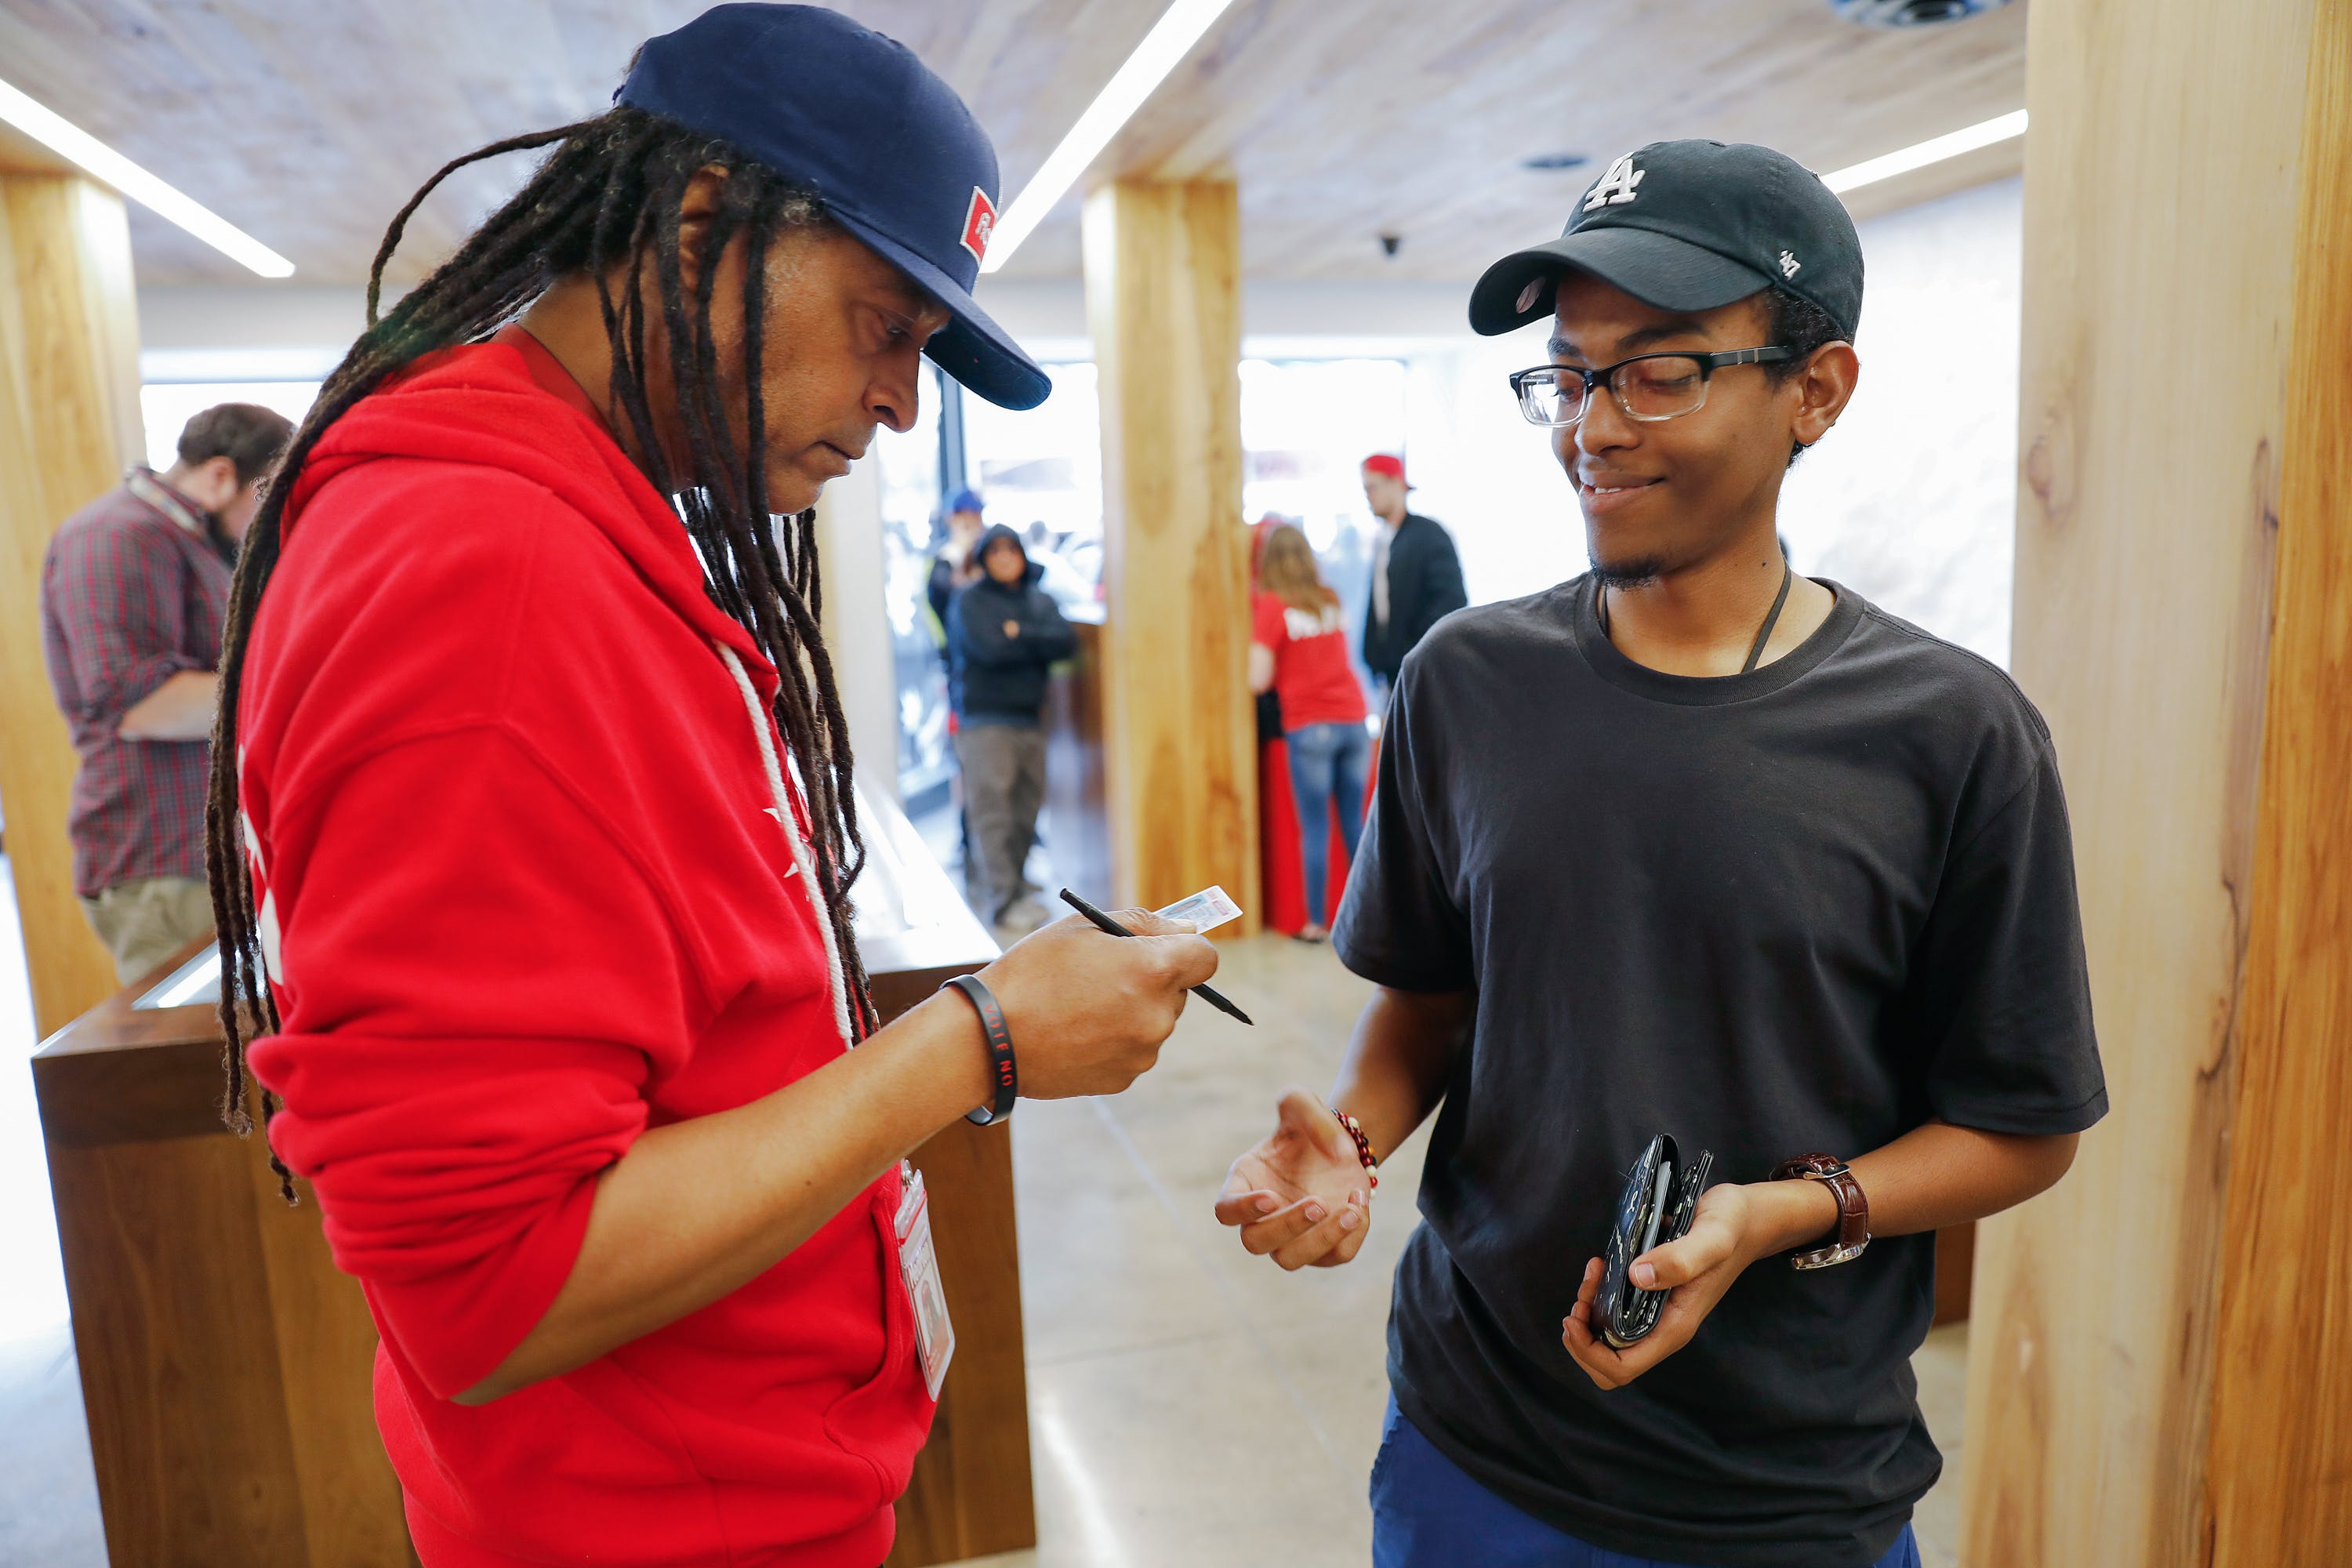 Californians are using medical marijuana cards to get discounts on recreational weed 2 of 2 How to microdose weed and treat anxiety